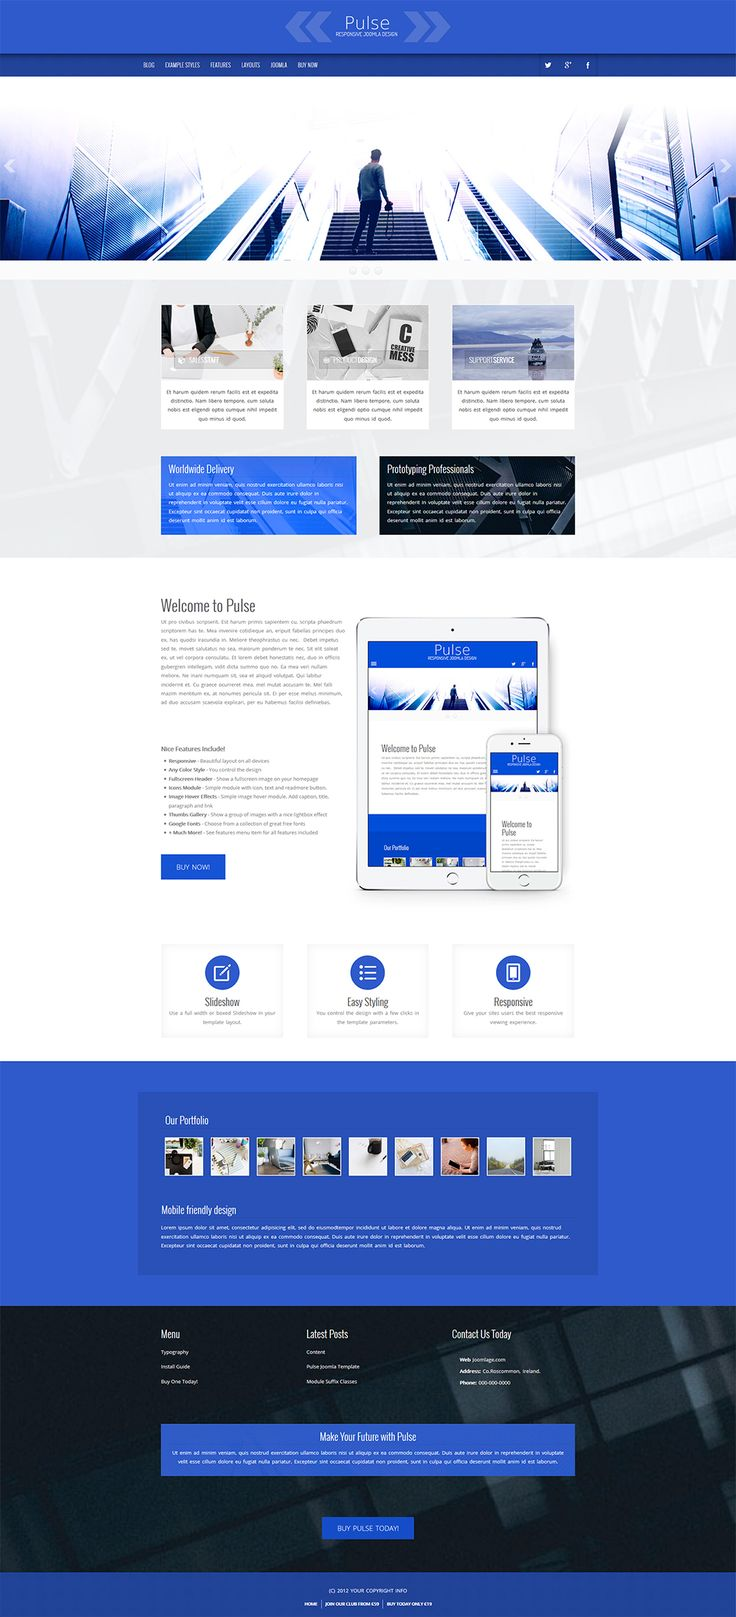 A bright simple smart #joomla #template design. #webdesign #graphicdesign #blue